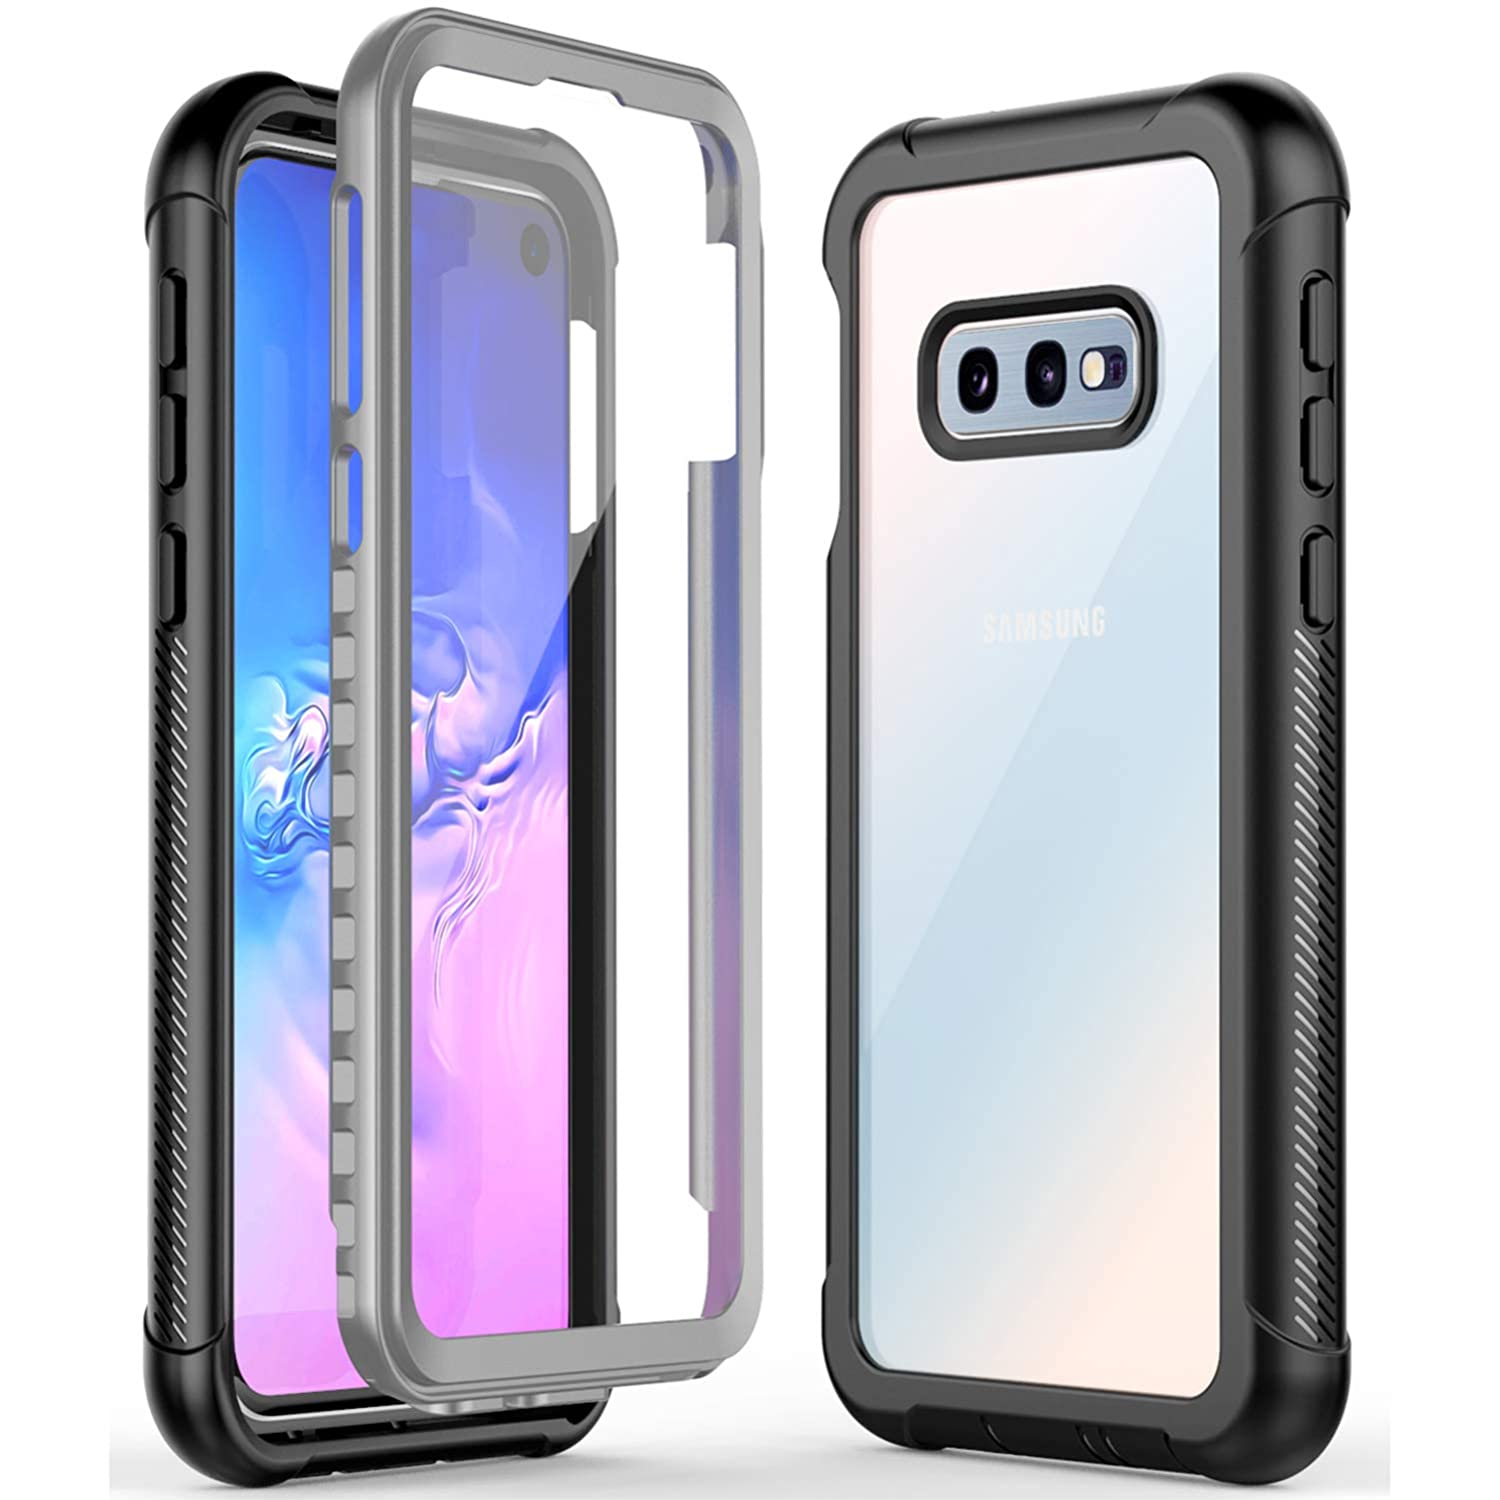 GOCOOL Samsung Galaxy S10E Case Clear Full Body with Built-in Screen Protector, Clear Sound, Heavy Duty Shockproof Rugged Cover Case 5.8 inch